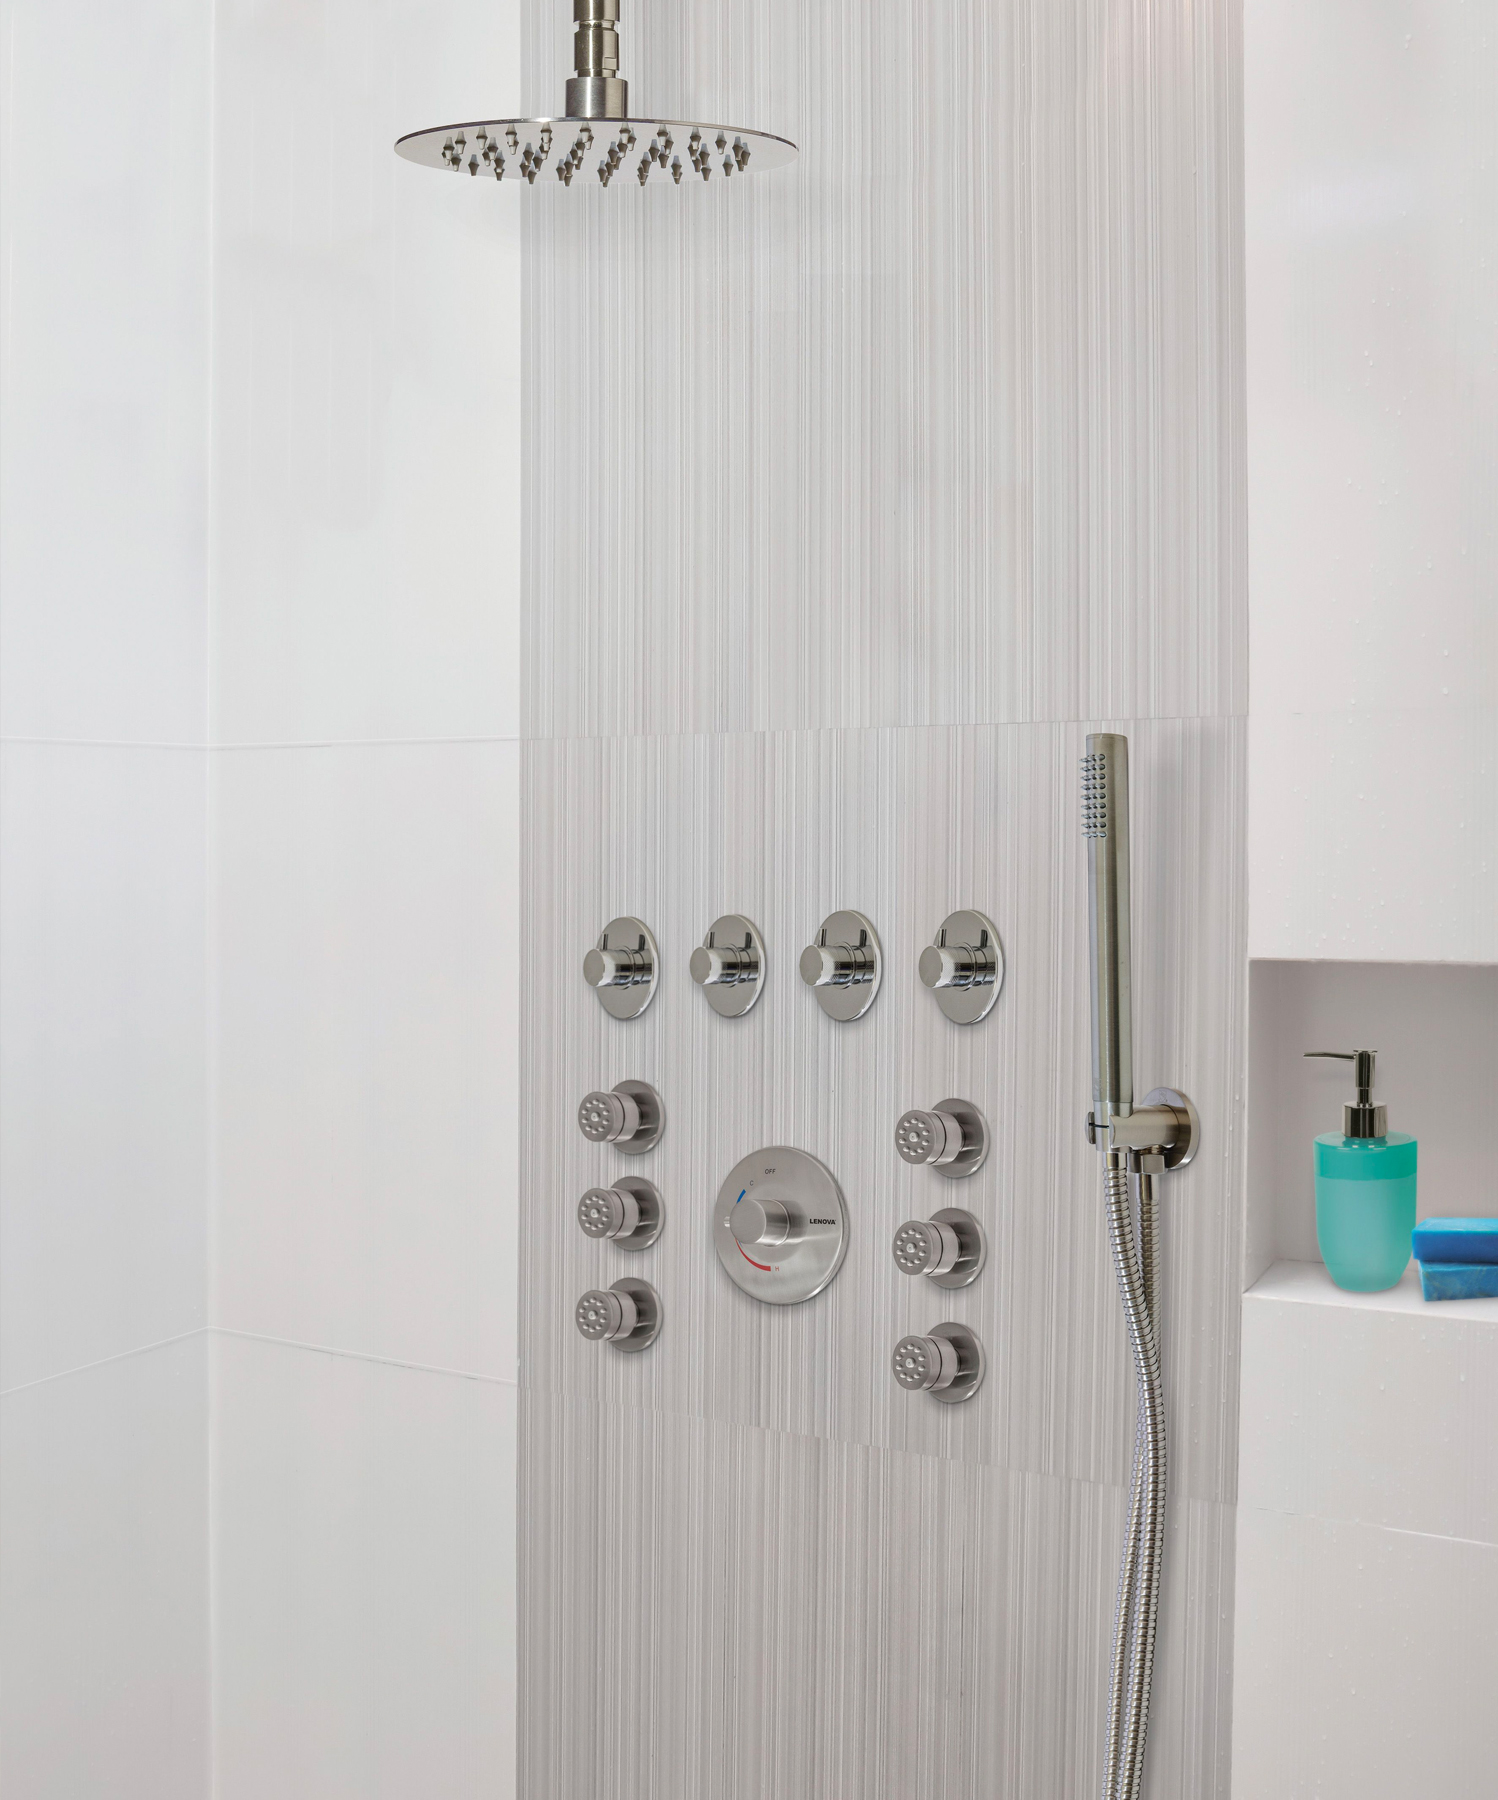 Designed as part of a $35 million R&D project, this shower system is the result of advanced engineering and technology.